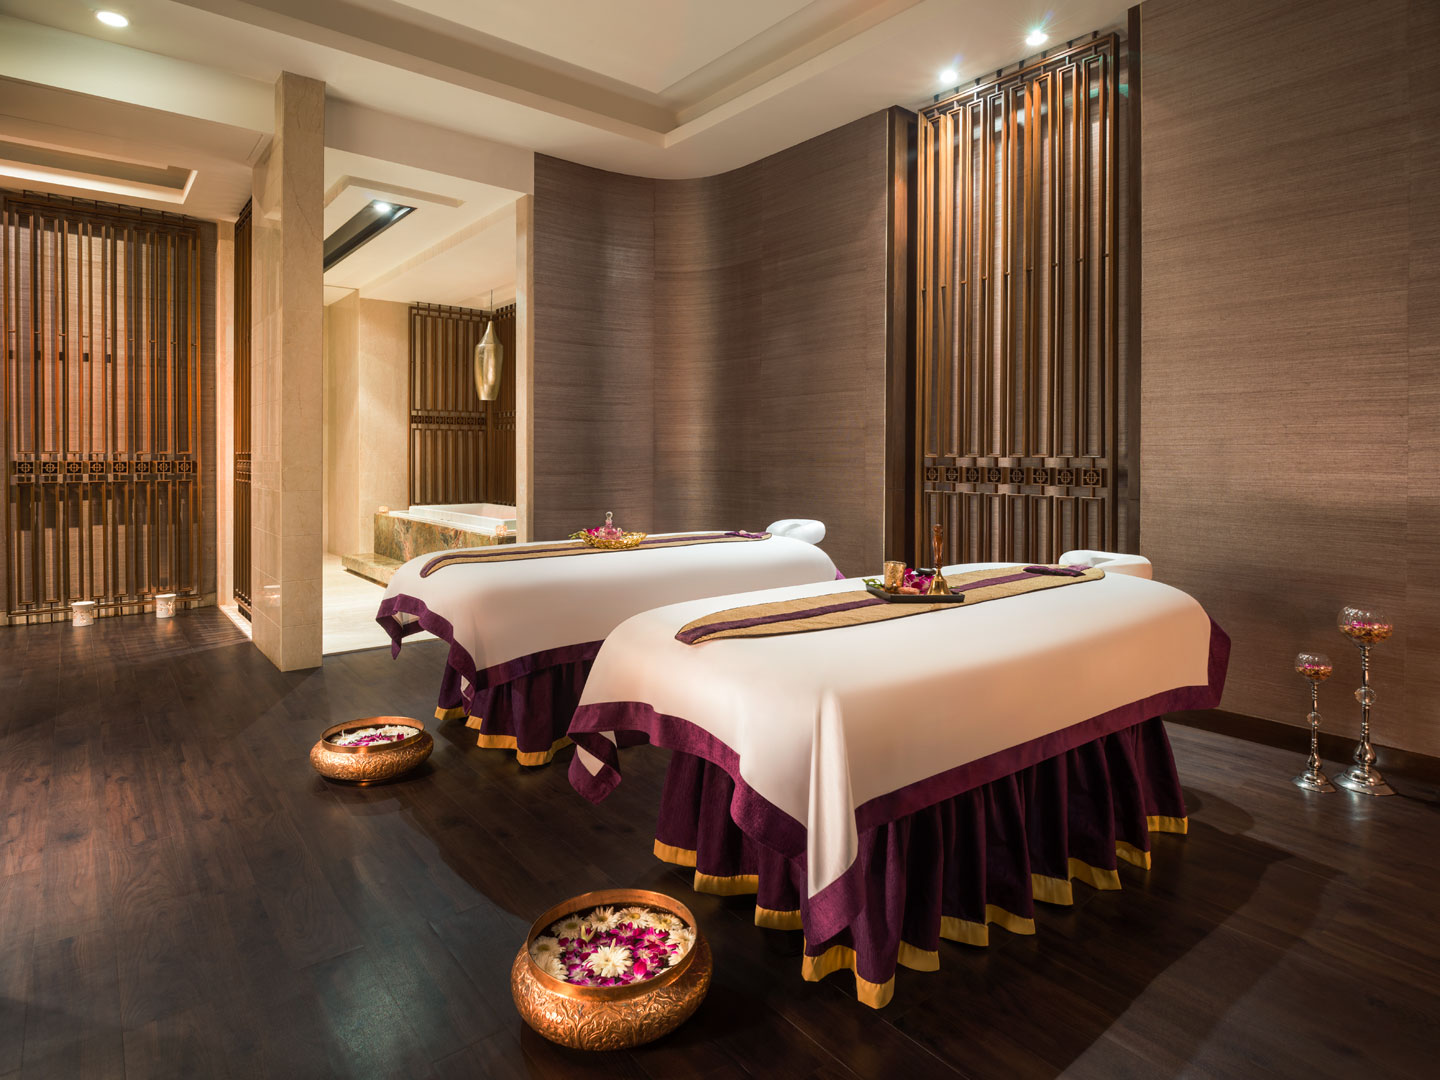 6 Best Luxury Spas in Mumbai to Relax and Unwind At